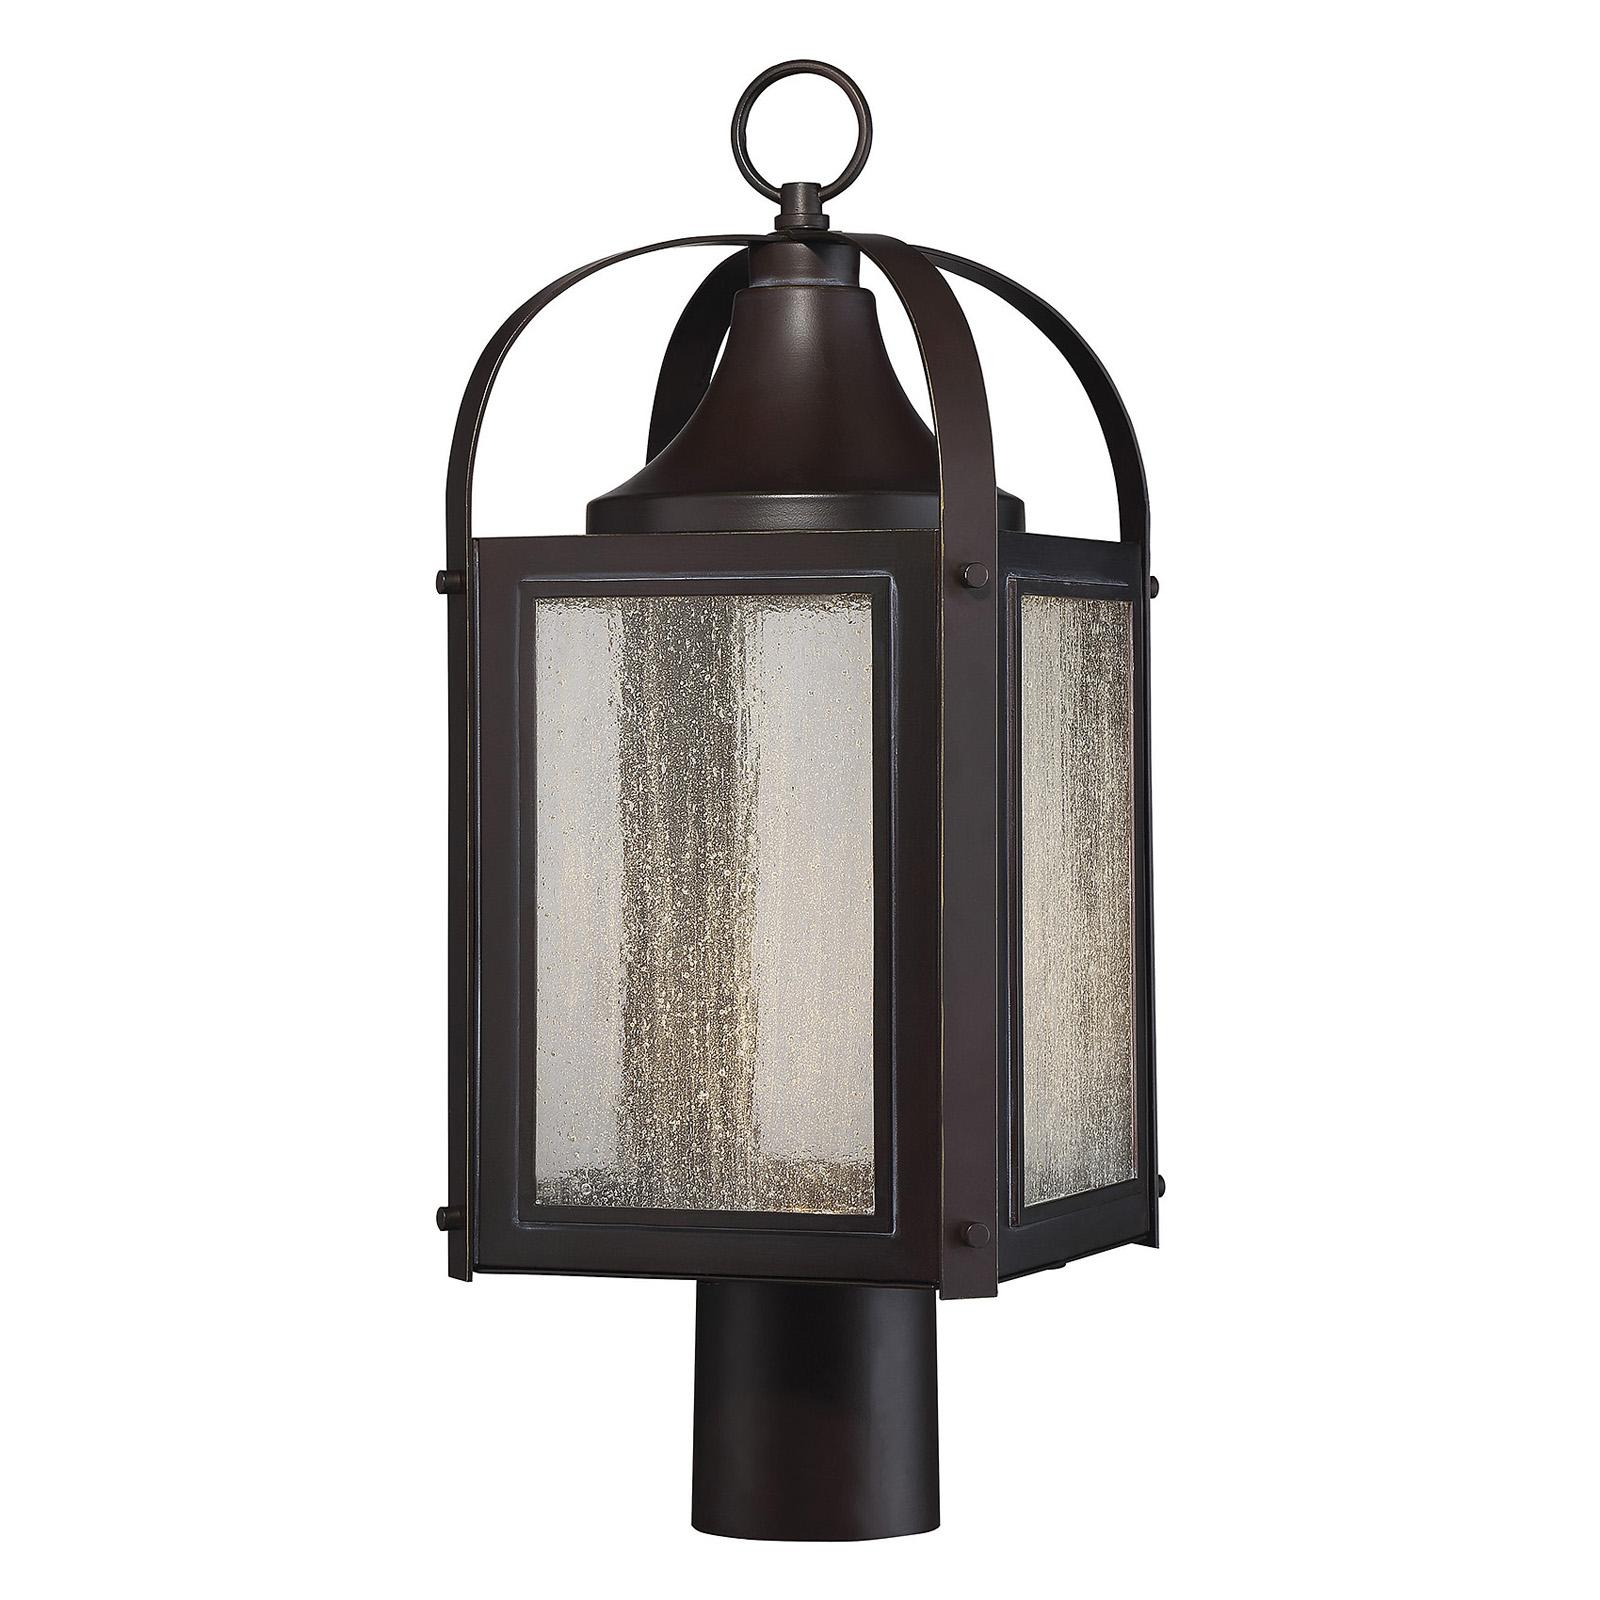 Savoy House Formby 5-333-213 Outdoor Post Lantern - 5-333...